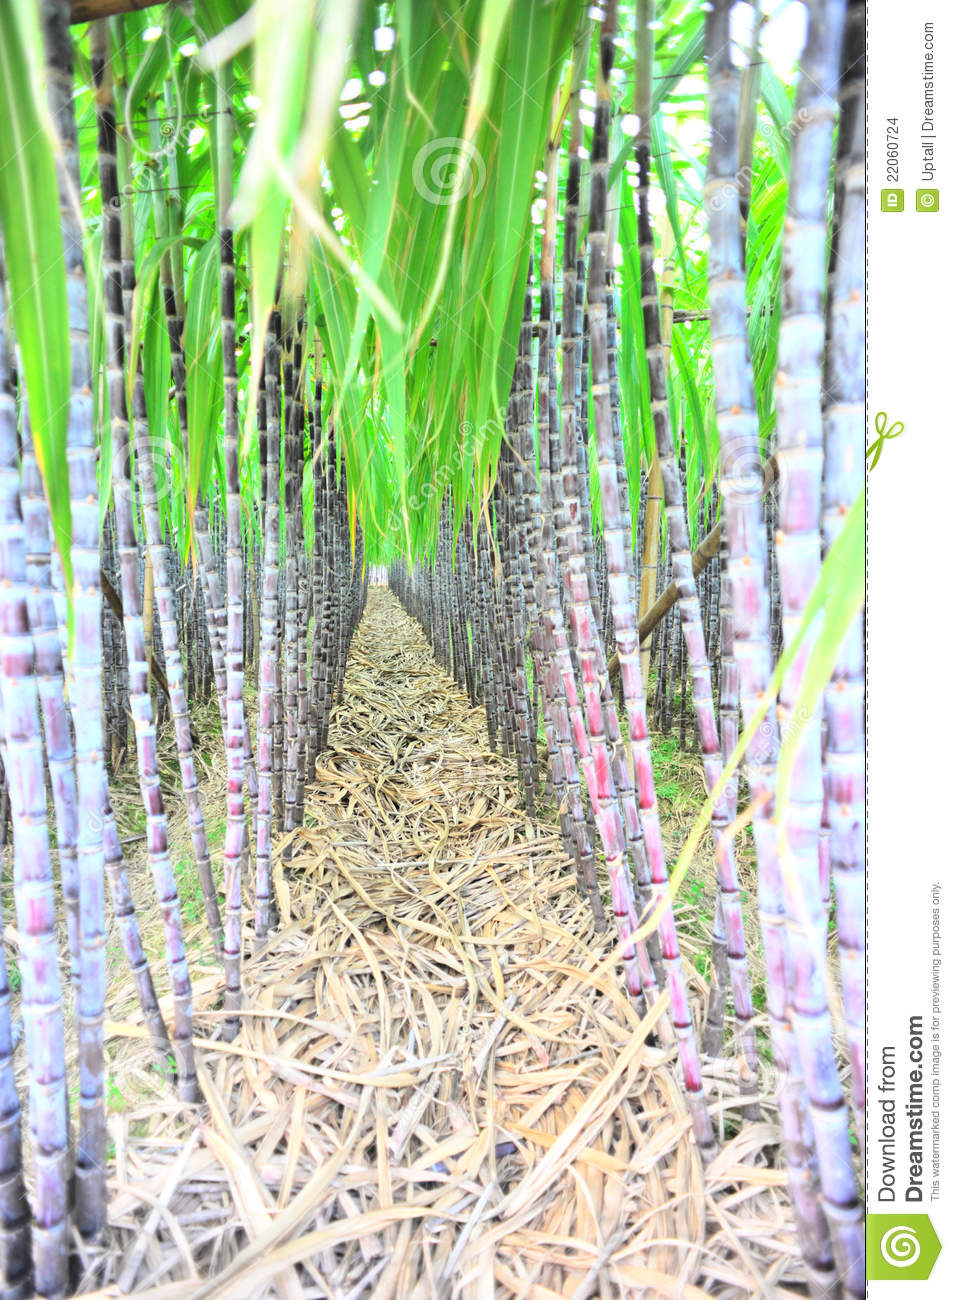 Black sugarcane rows